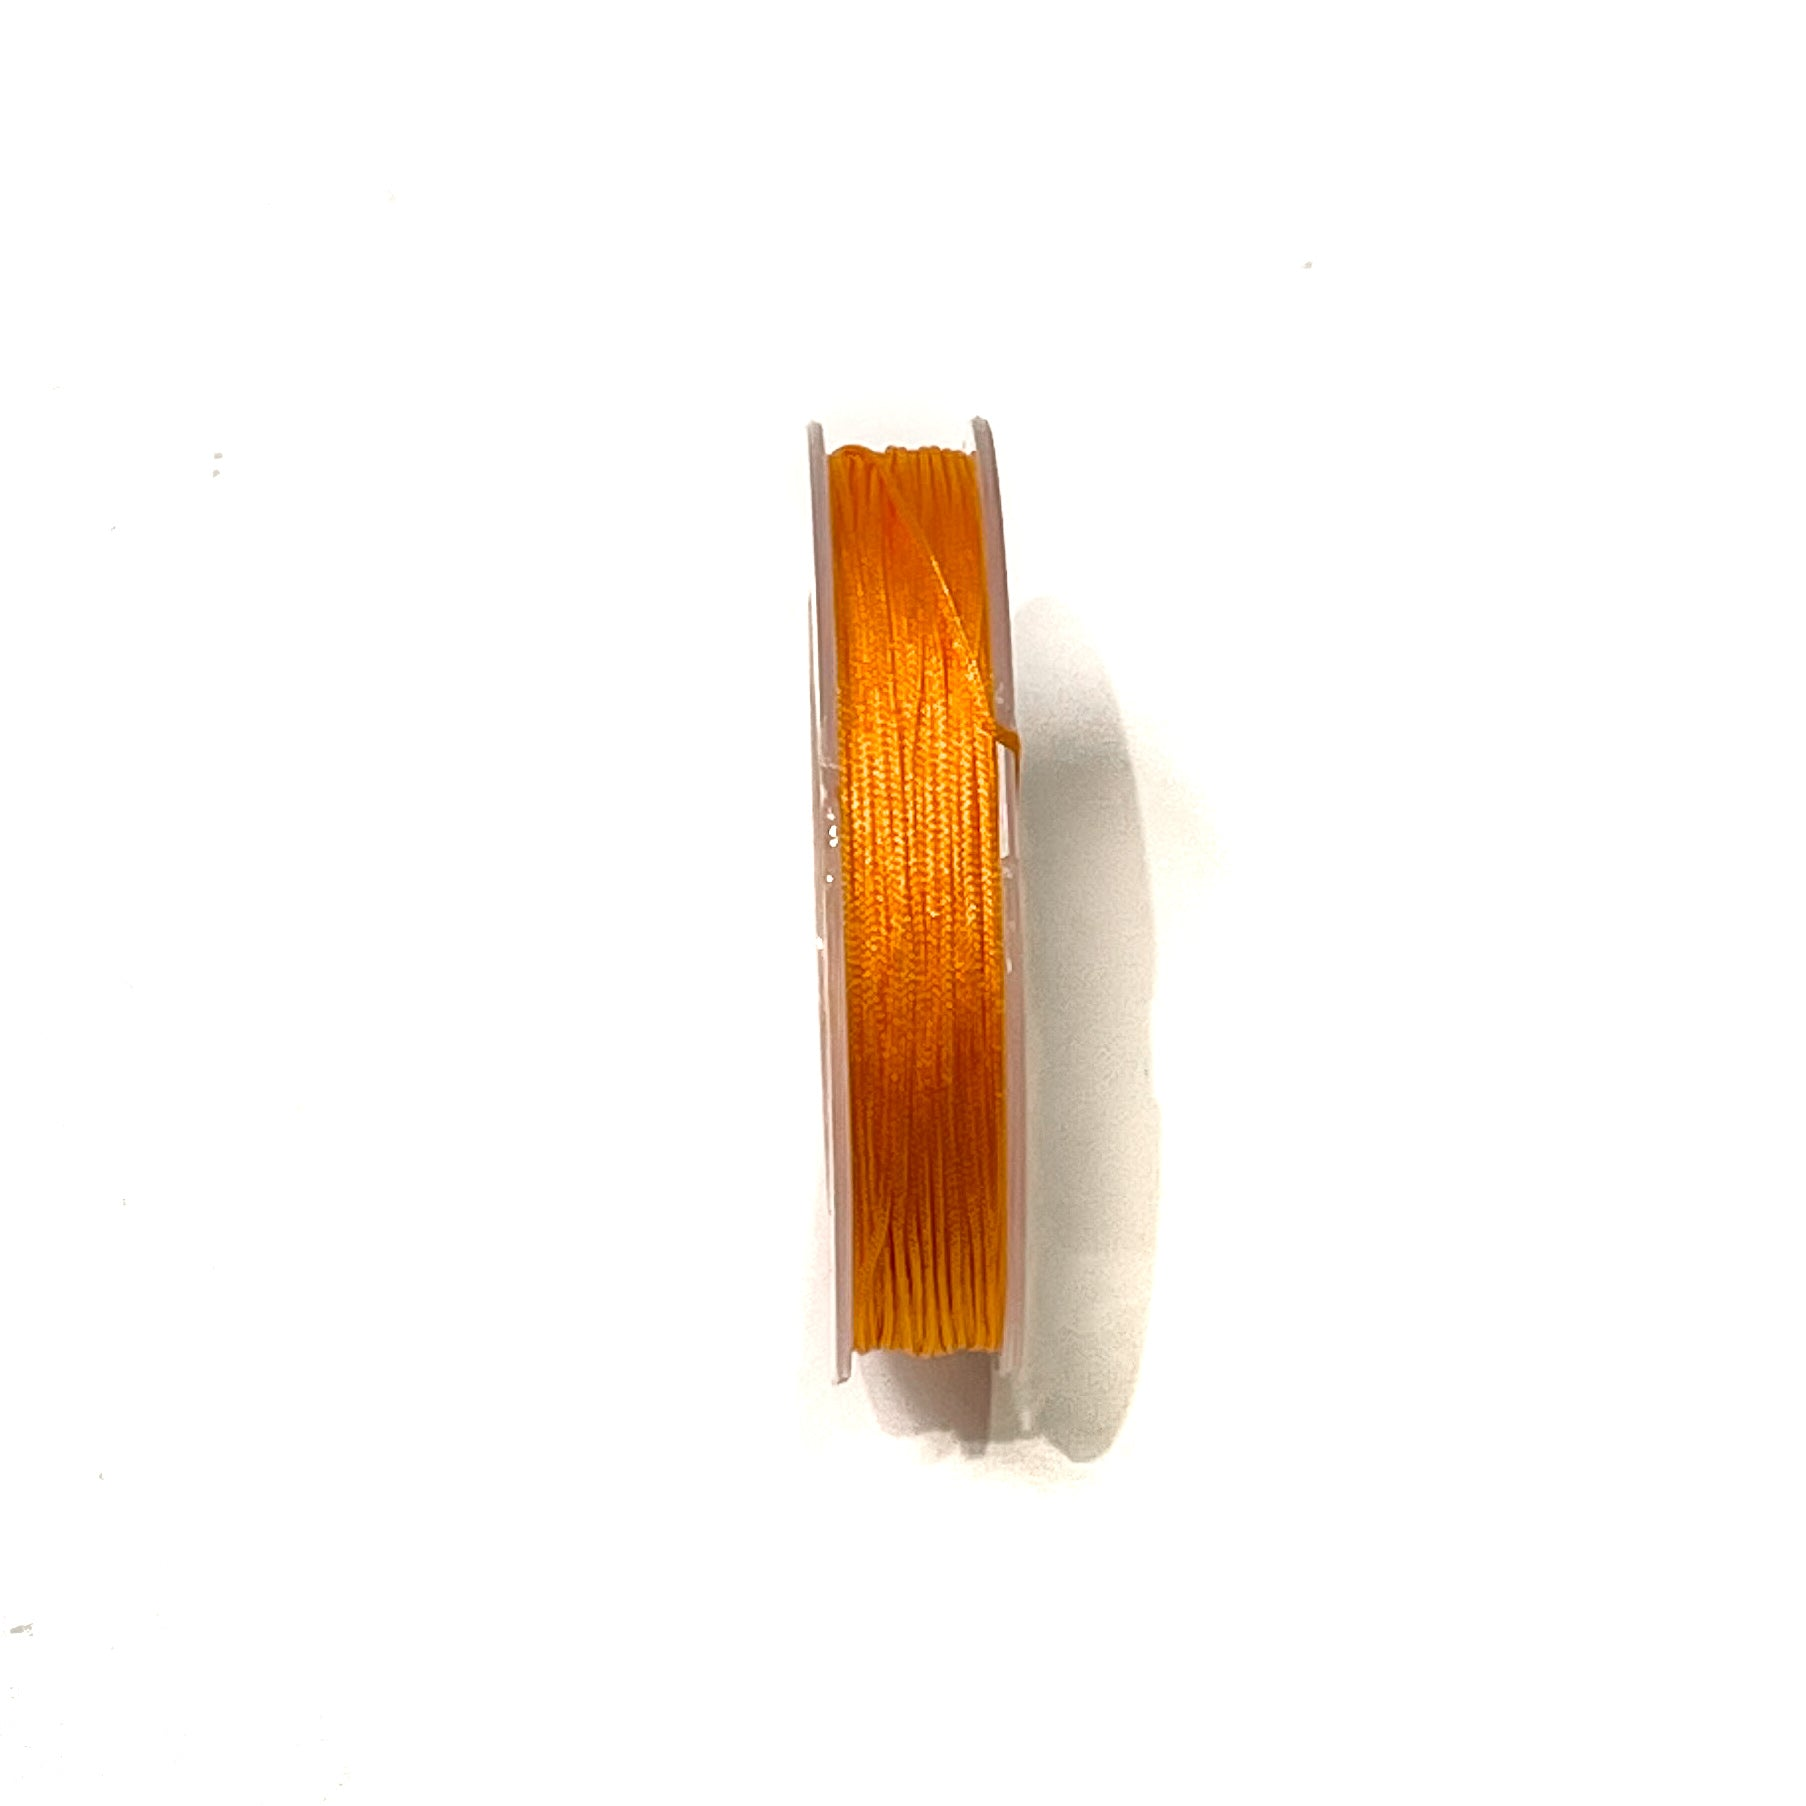 .4mm Chinese Knotting Cord - 20 yd. BOBBIN